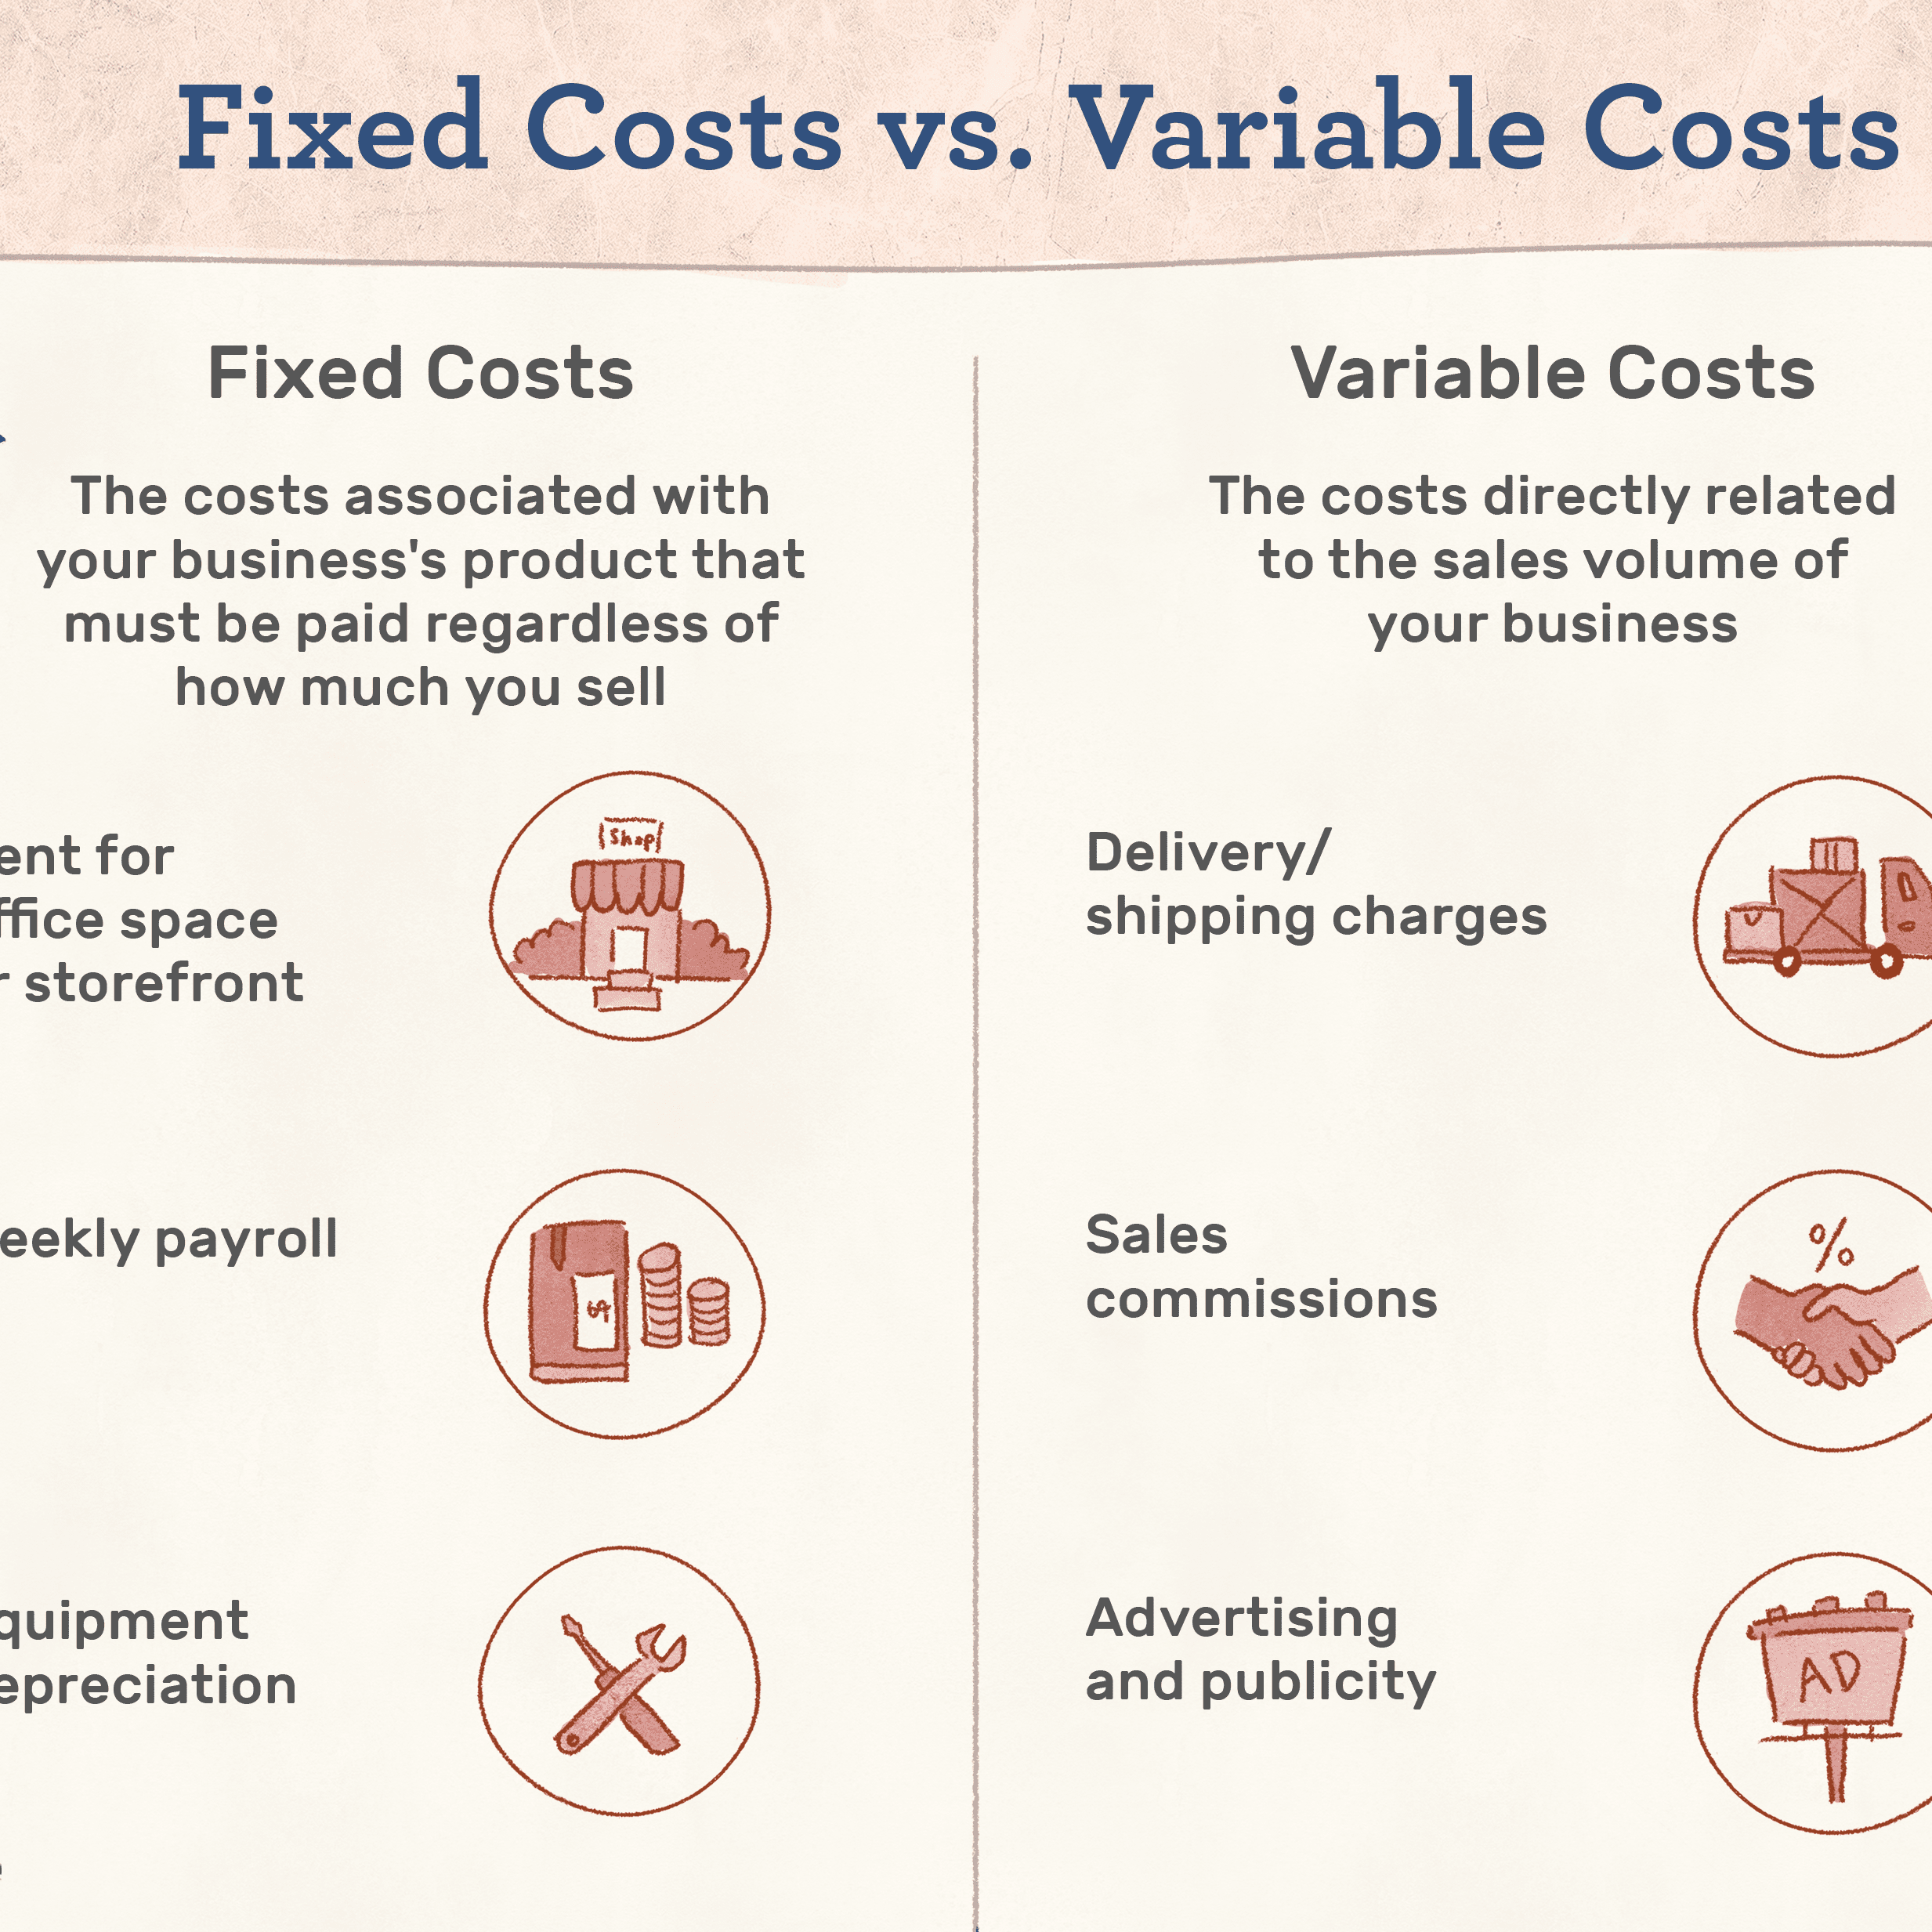 Fixed cost versus variable cost